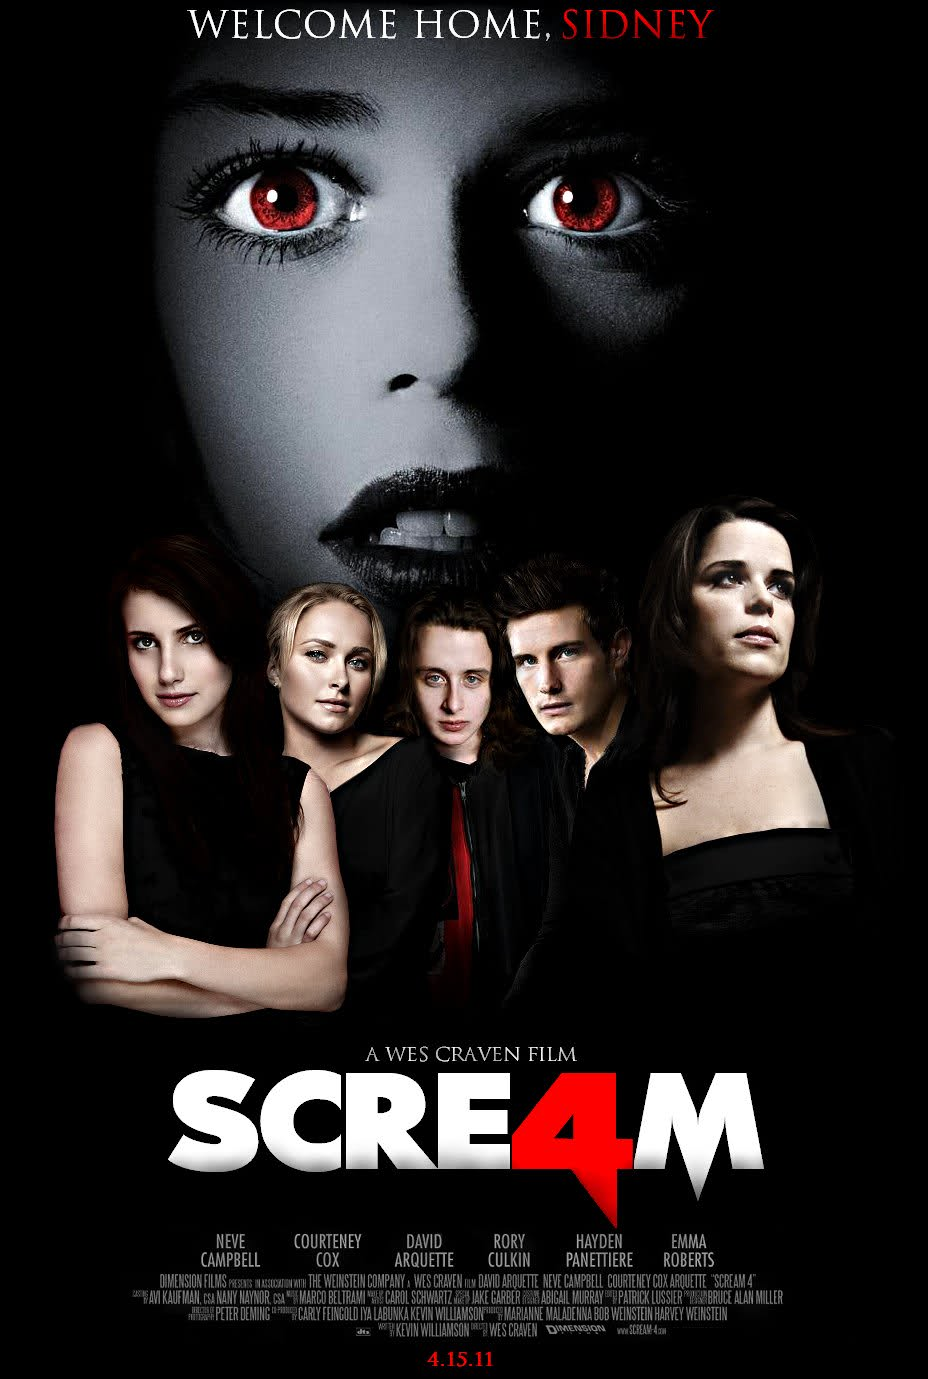 scream 4 download free movies online full movies watch